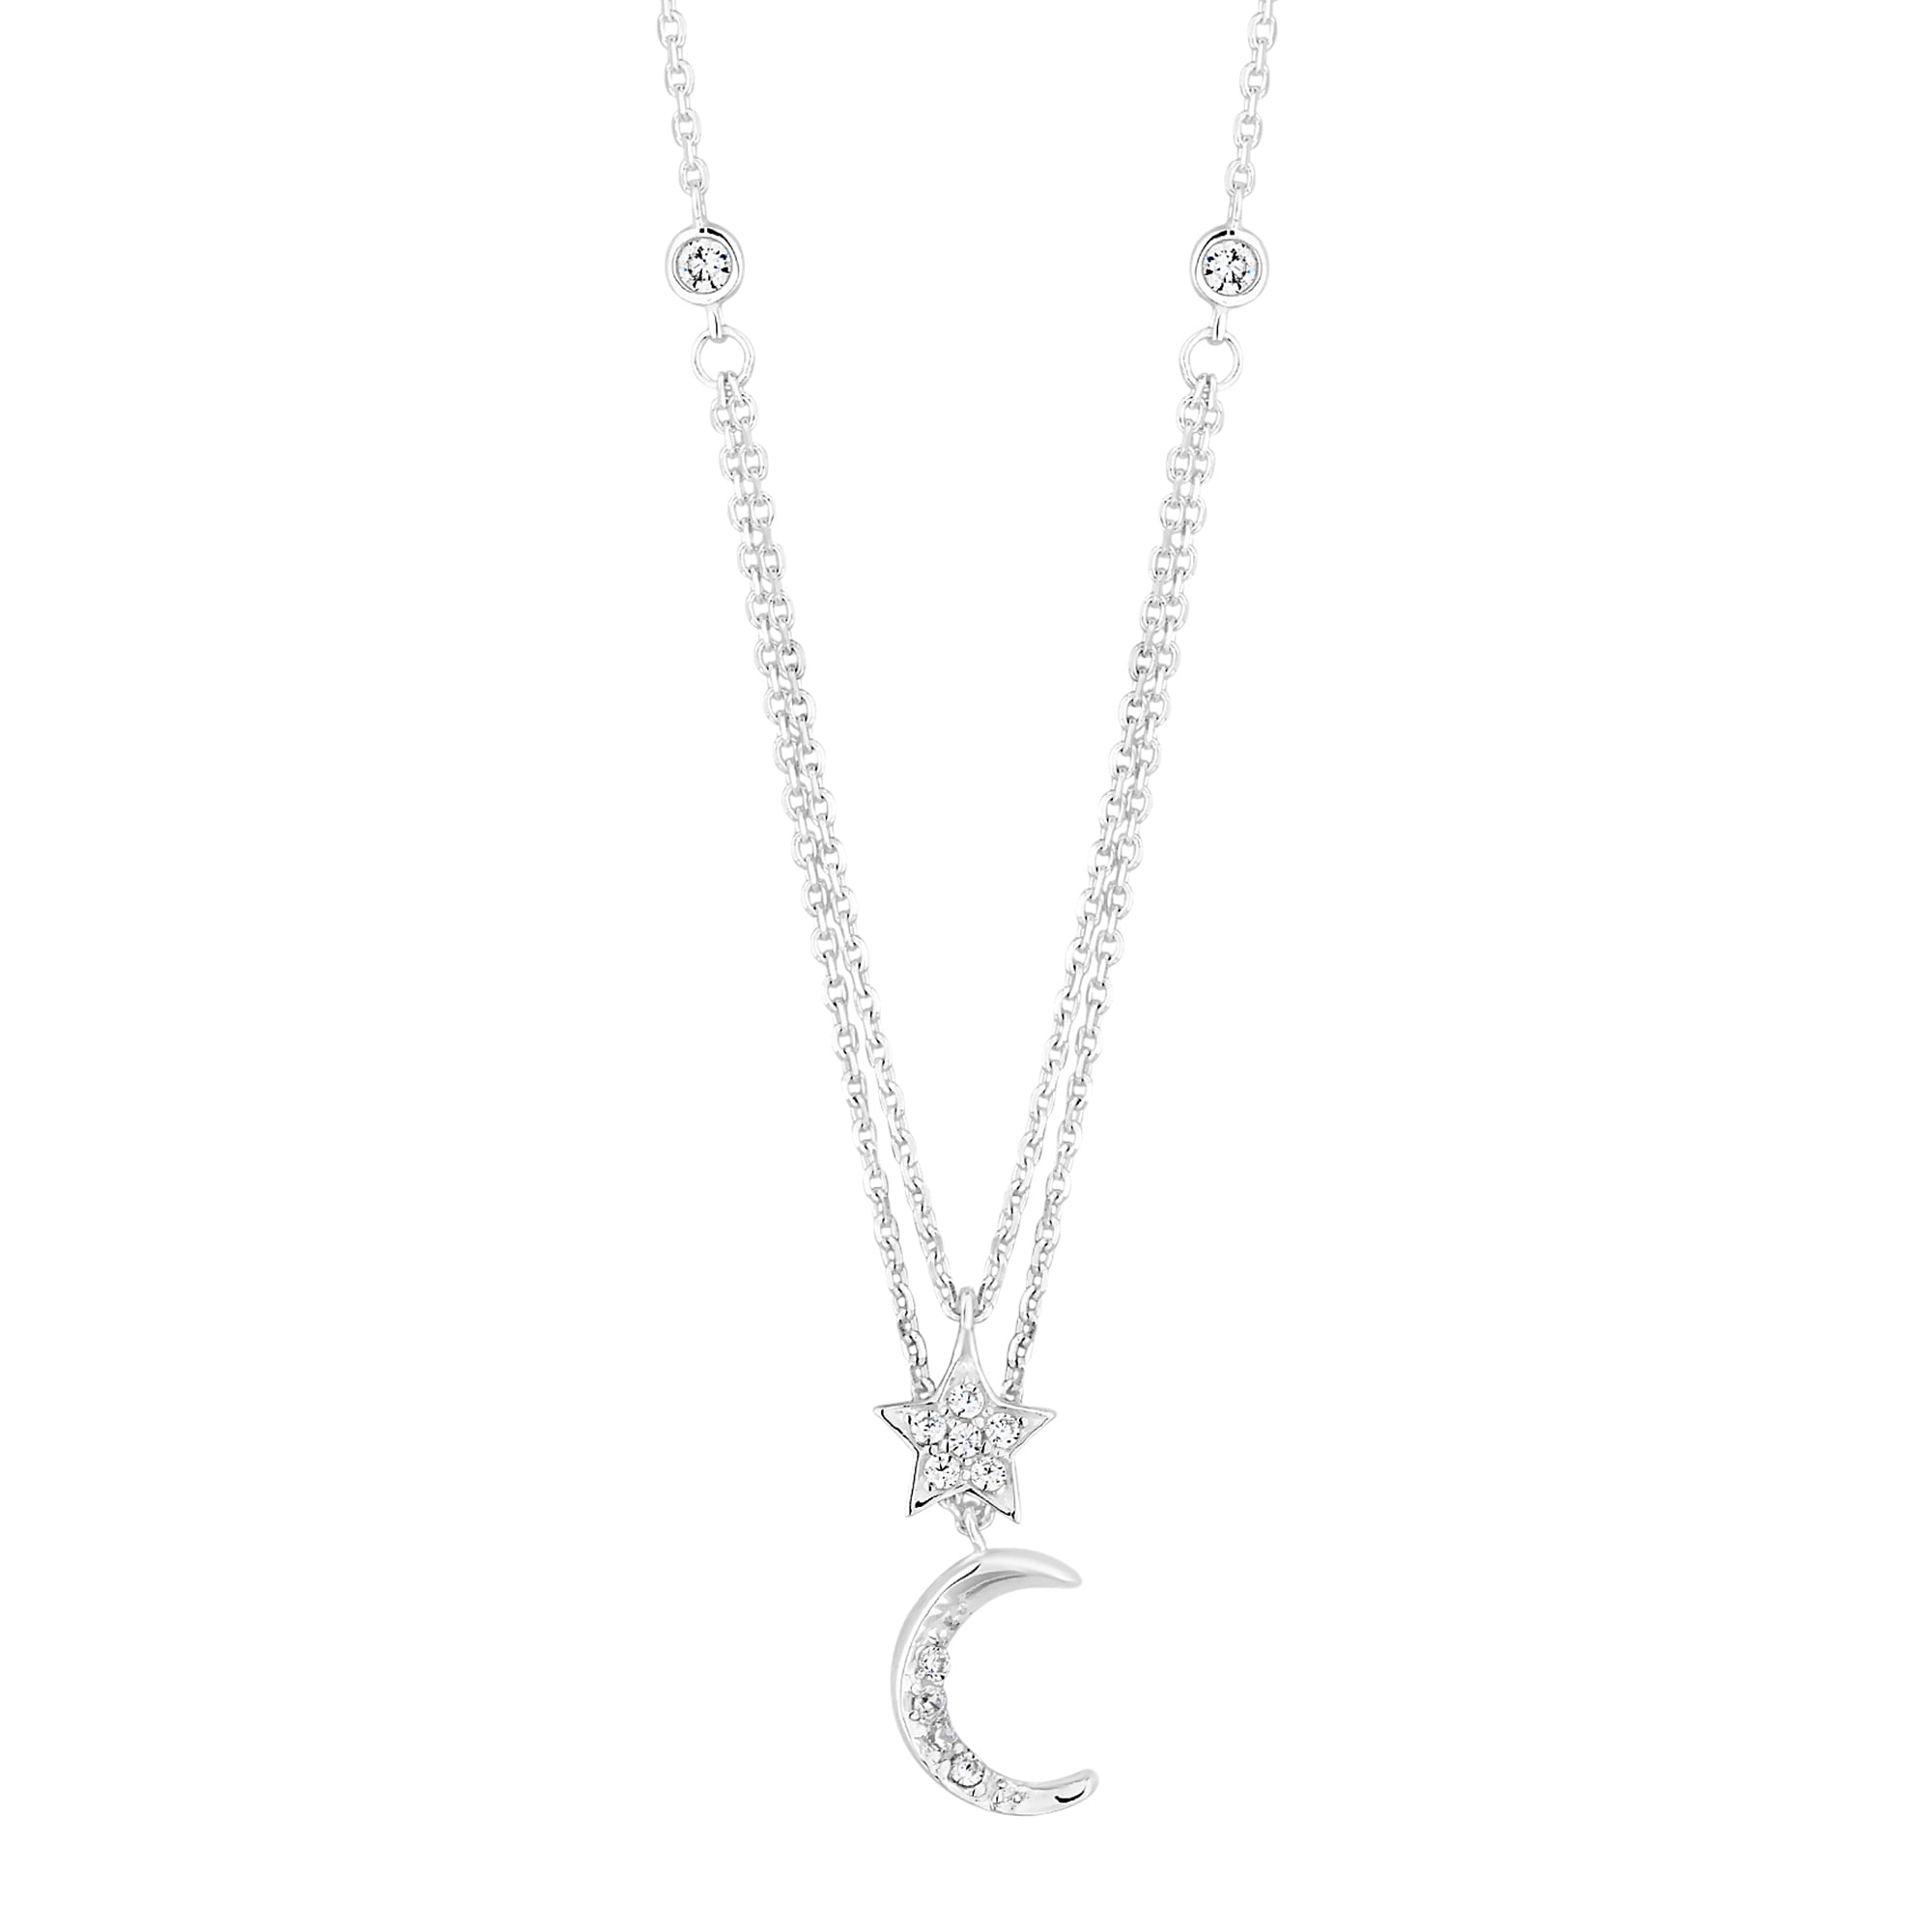 necklaces star multi row zoom silver necklace simply celestial and sterling moon jewellery